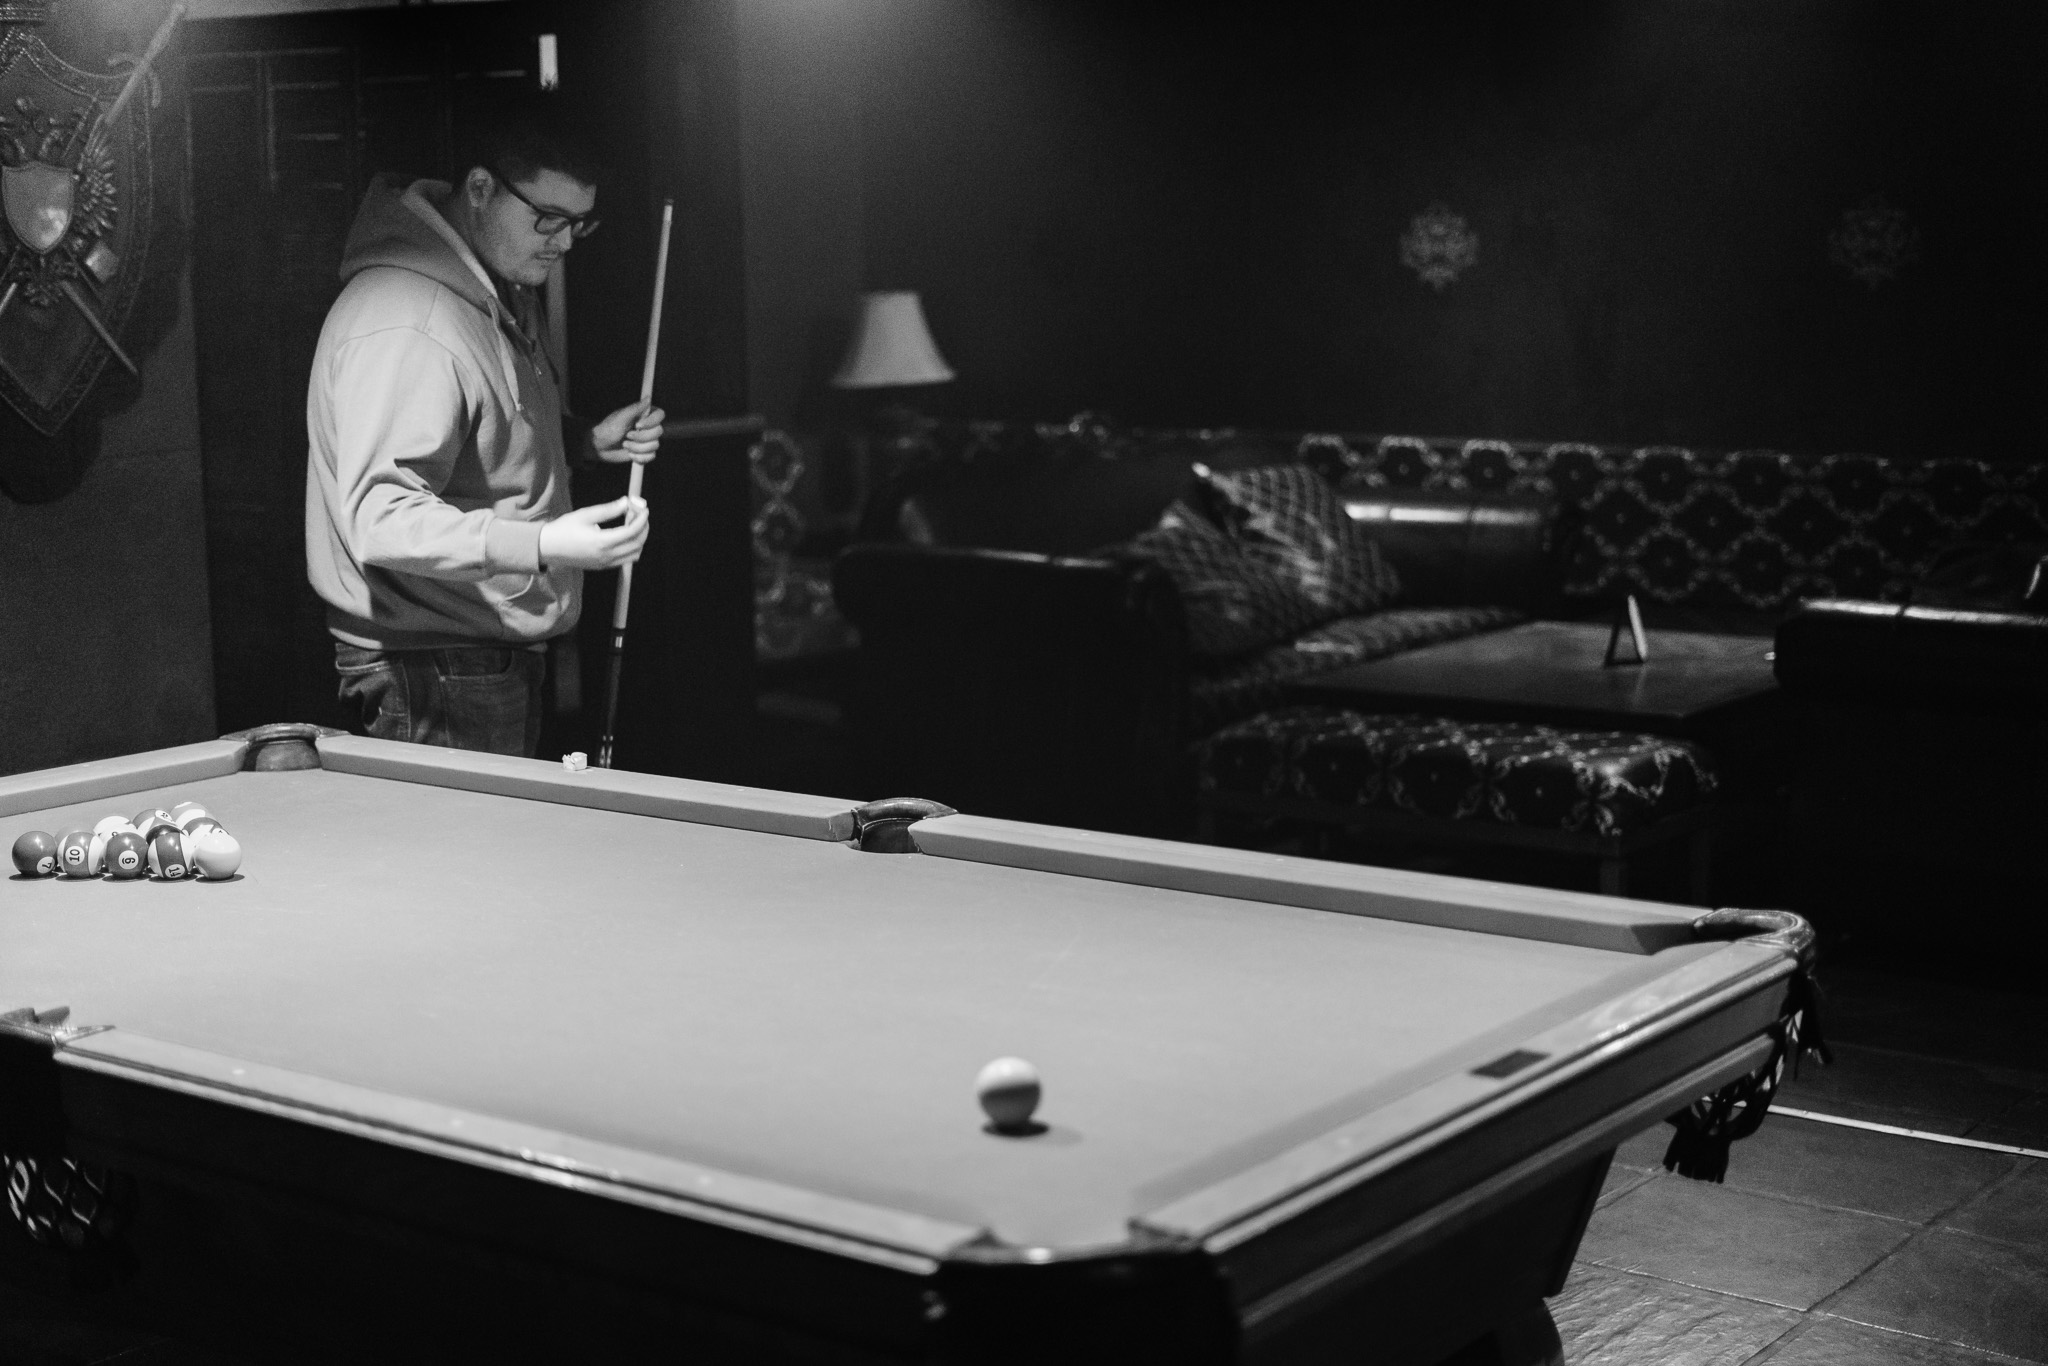 The next game of billiards is about to begin